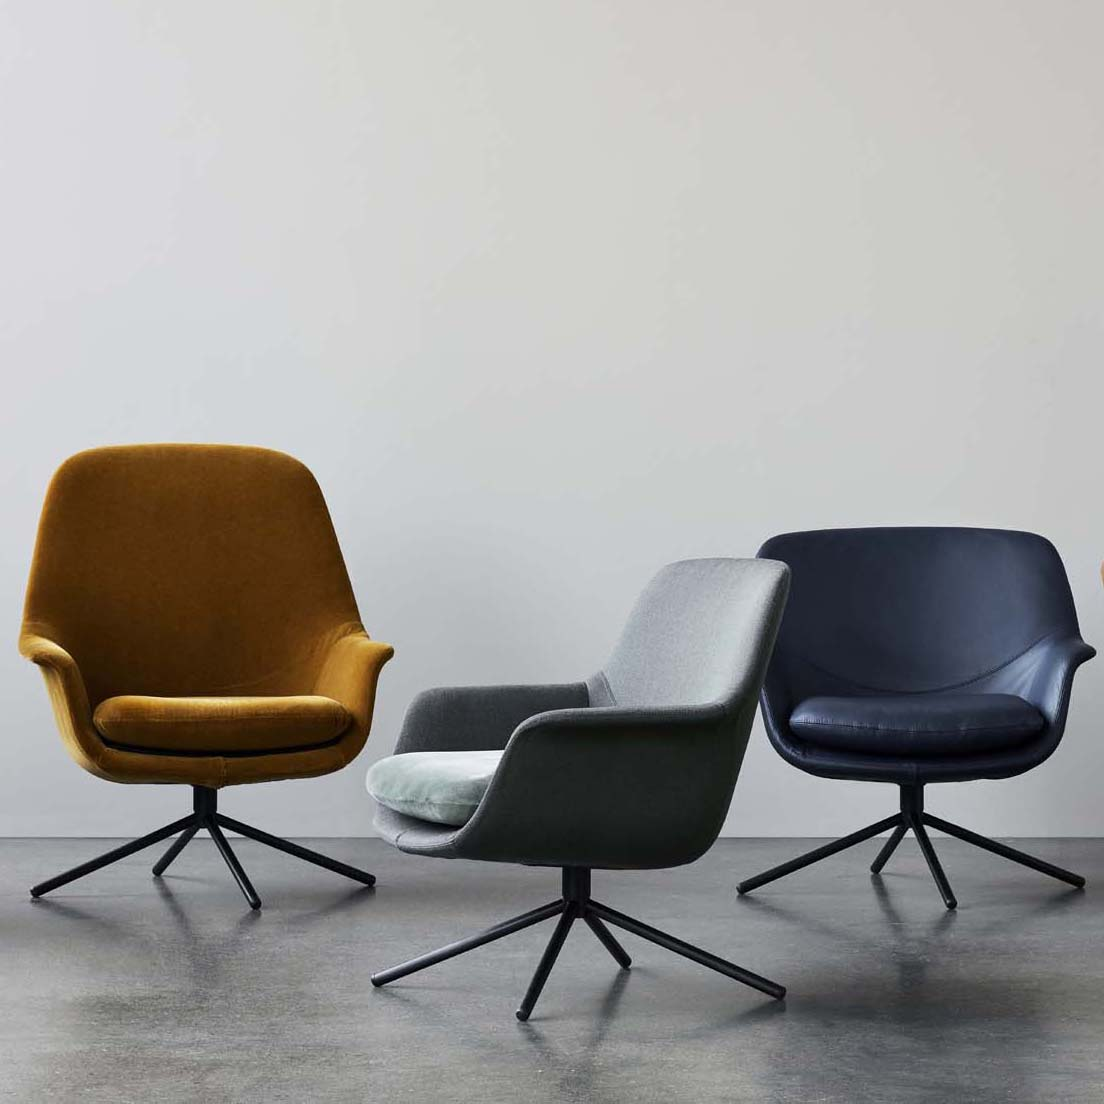 Fantastic Smile Lounge Chairs Stools Smile Icons Of Denmark Alphanode Cool Chair Designs And Ideas Alphanodeonline